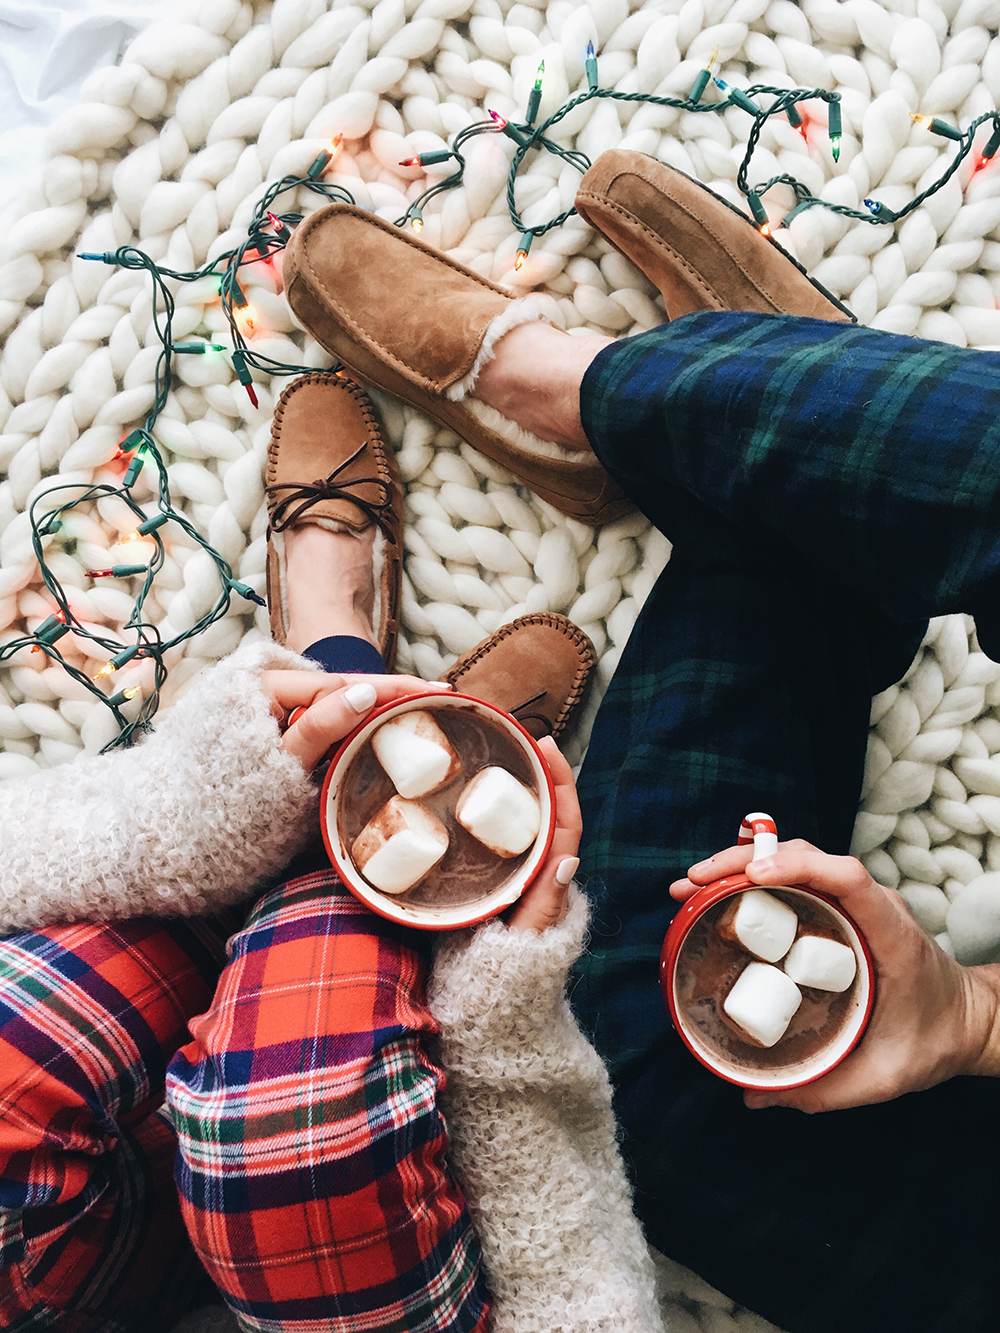 5a96d9f91dd Cozy Holiday Gift Idea: Ugg Slippers! - LivvyLand | Austin Fashion ...